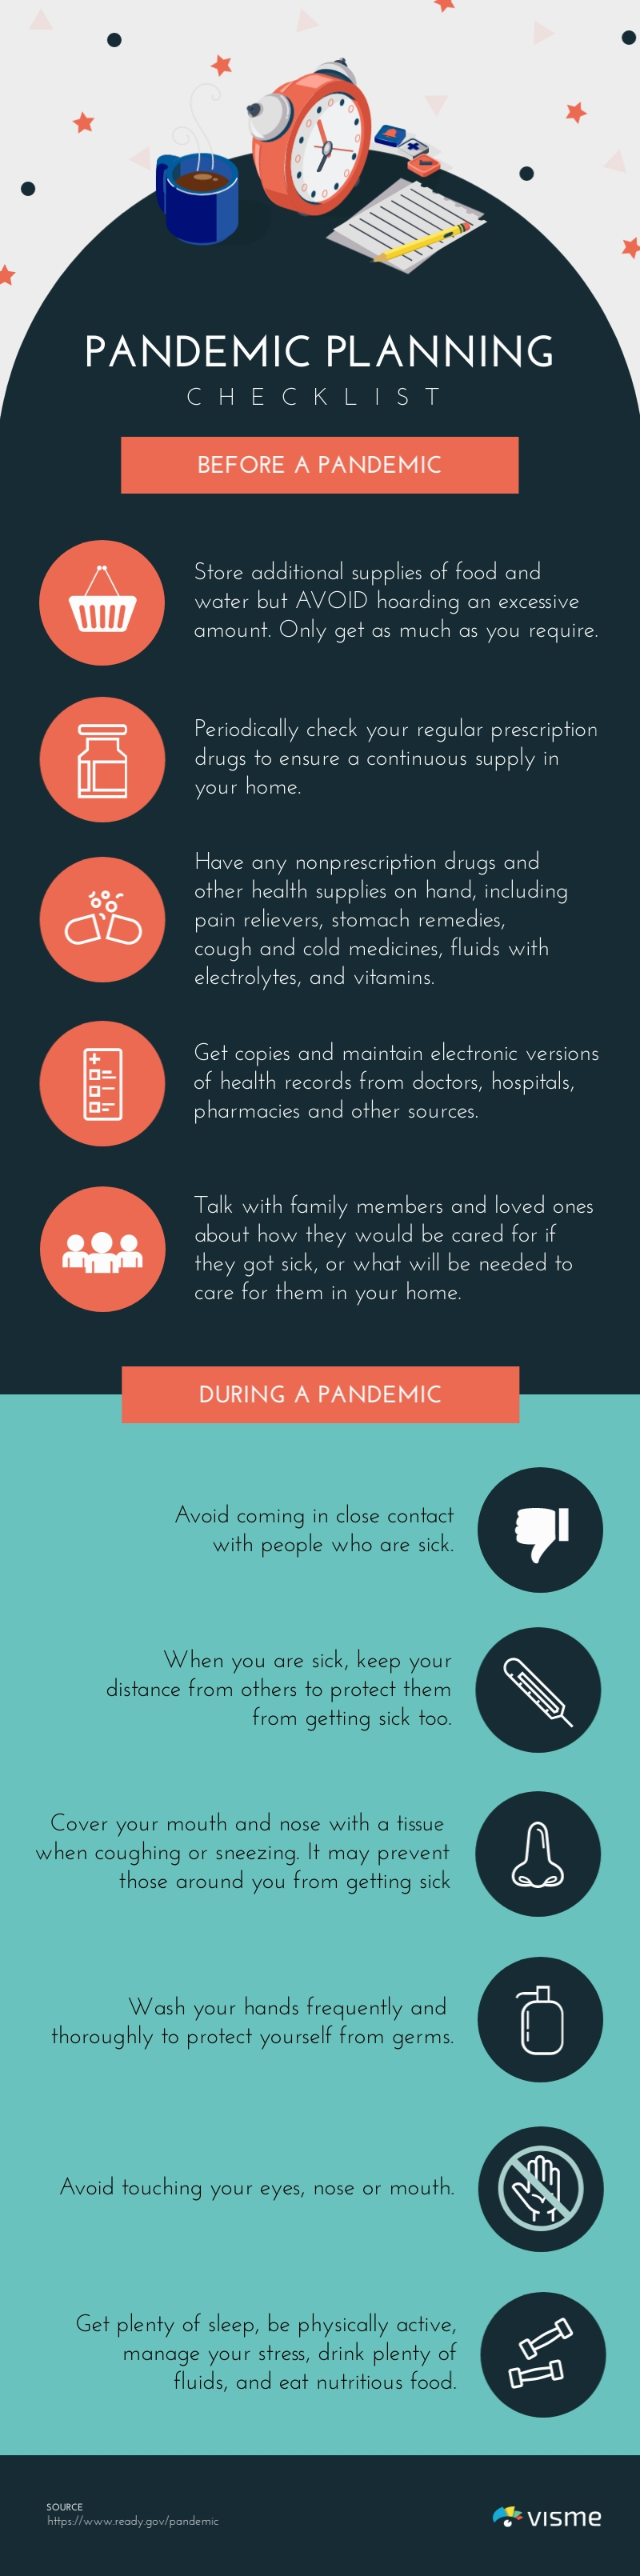 Pandemic Planning Checklist - Infographic Template